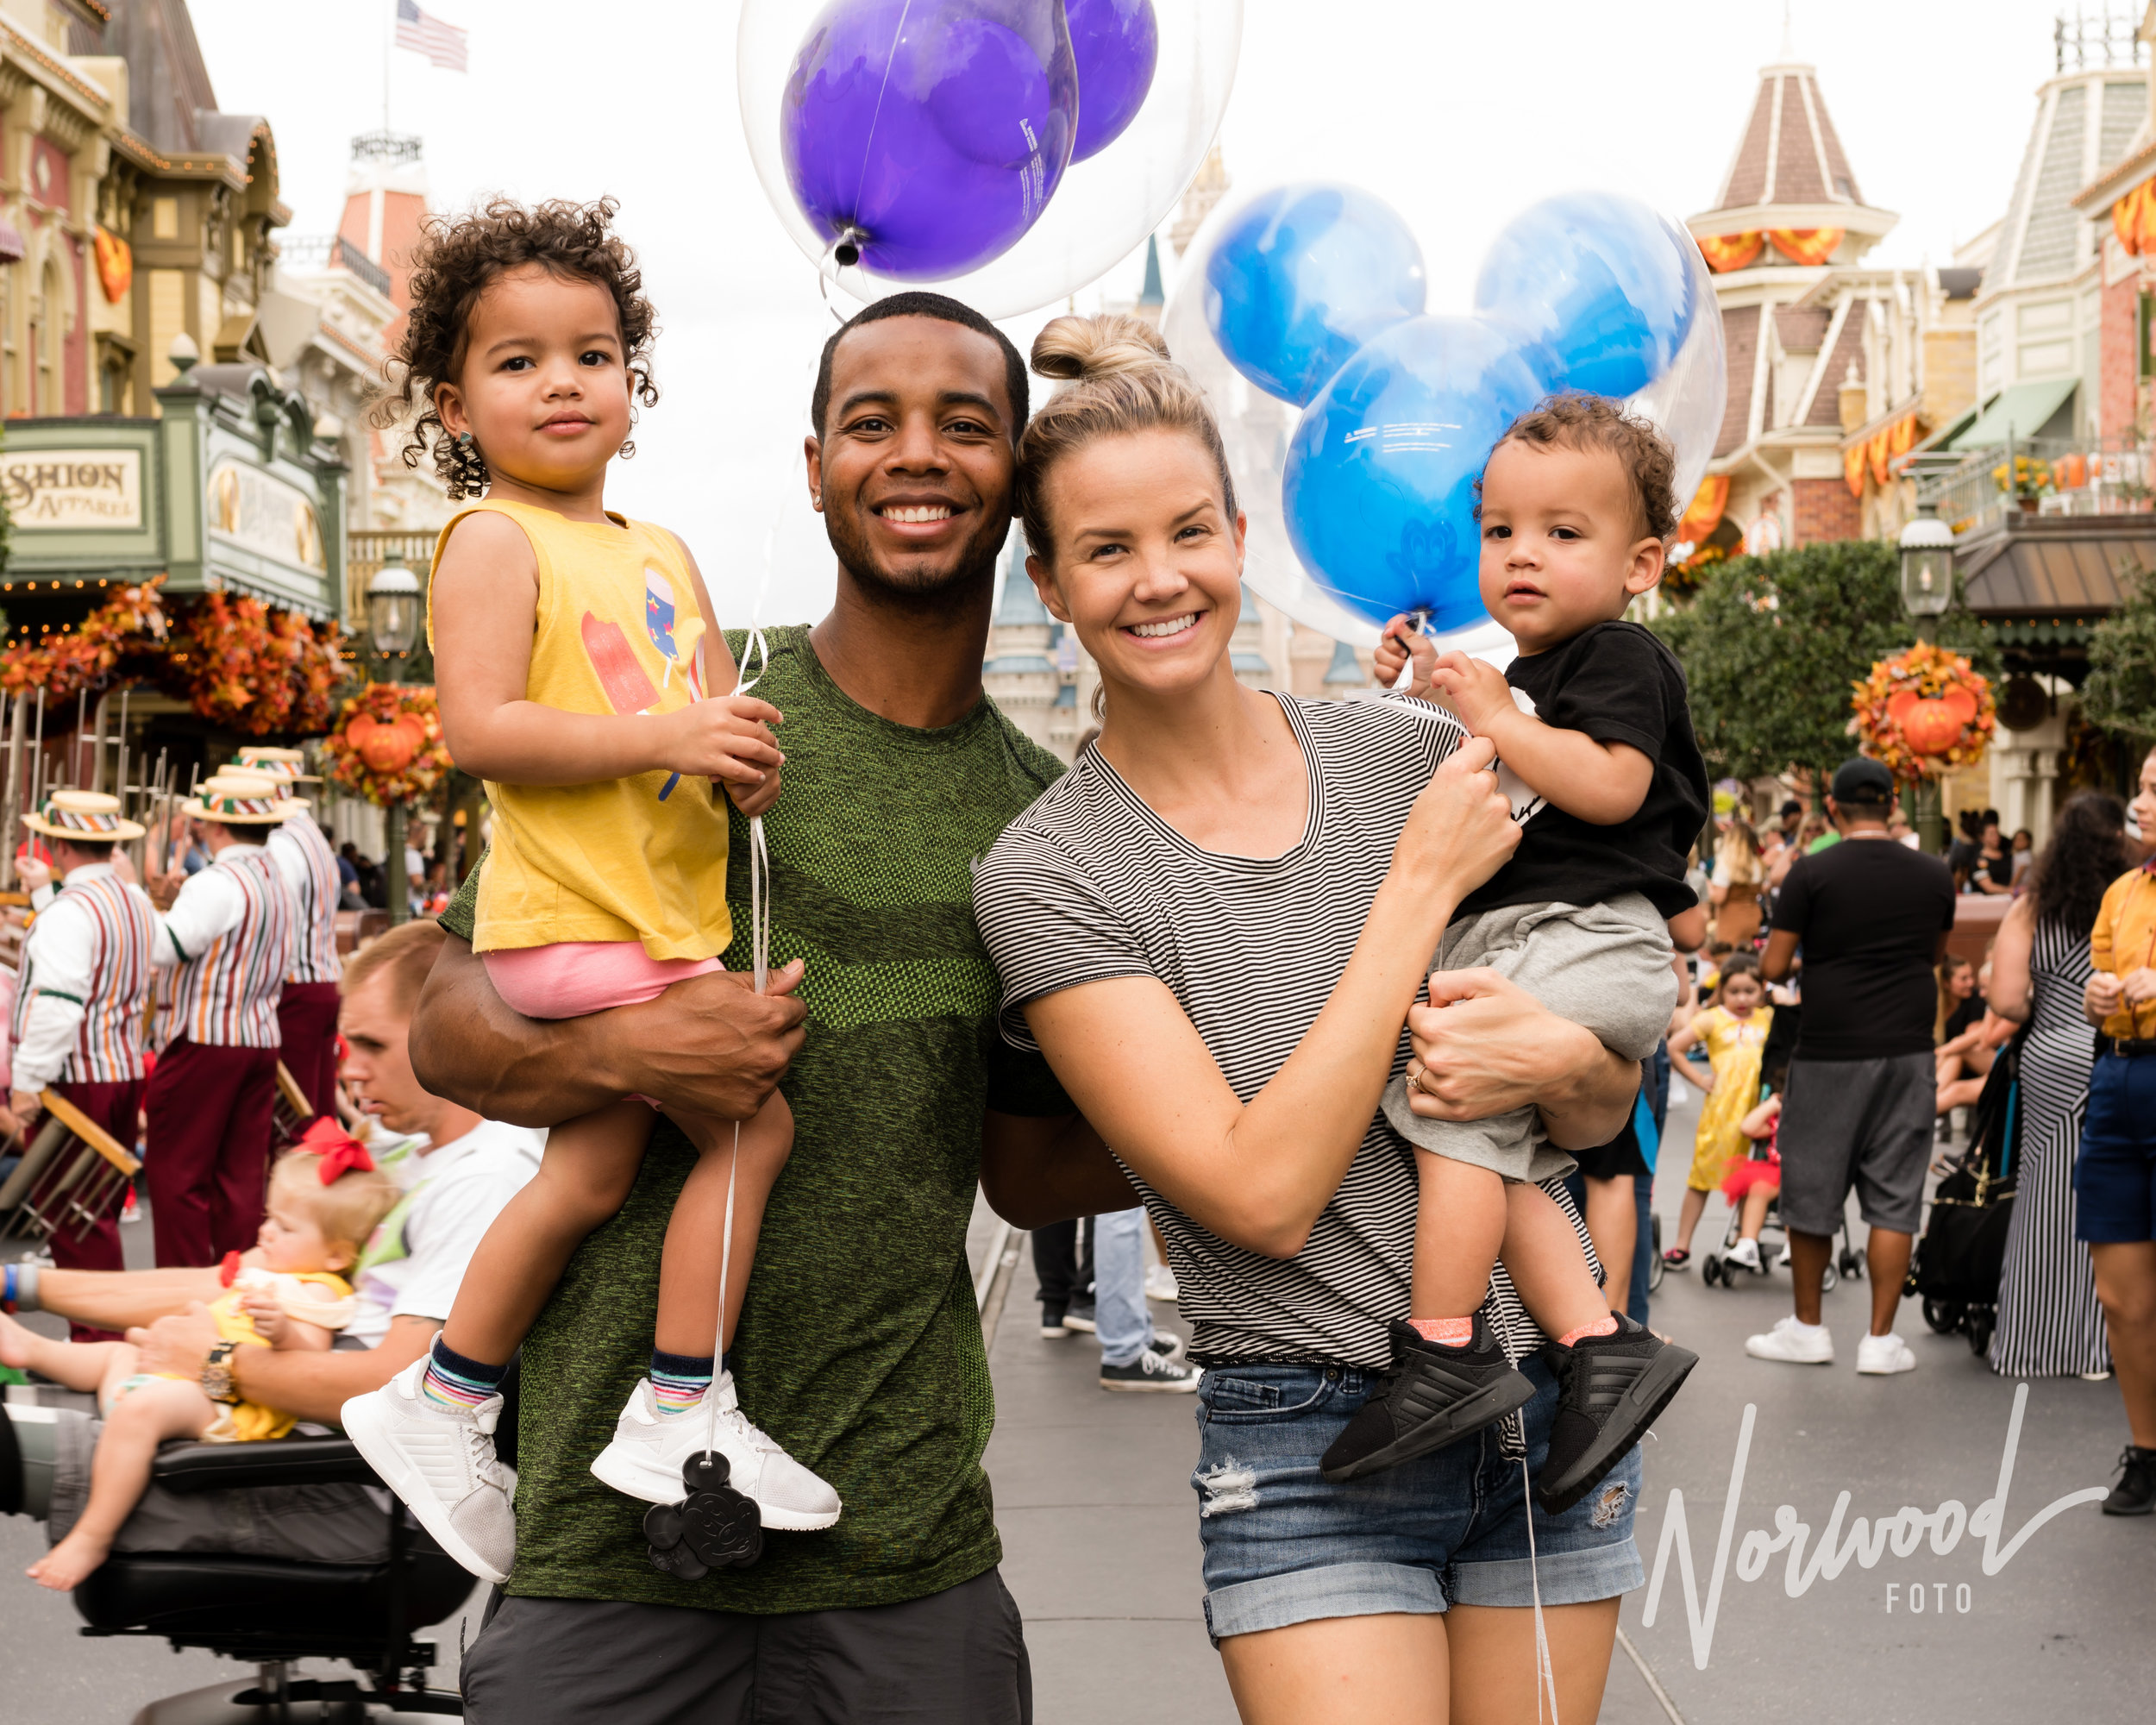 The Norwood Family